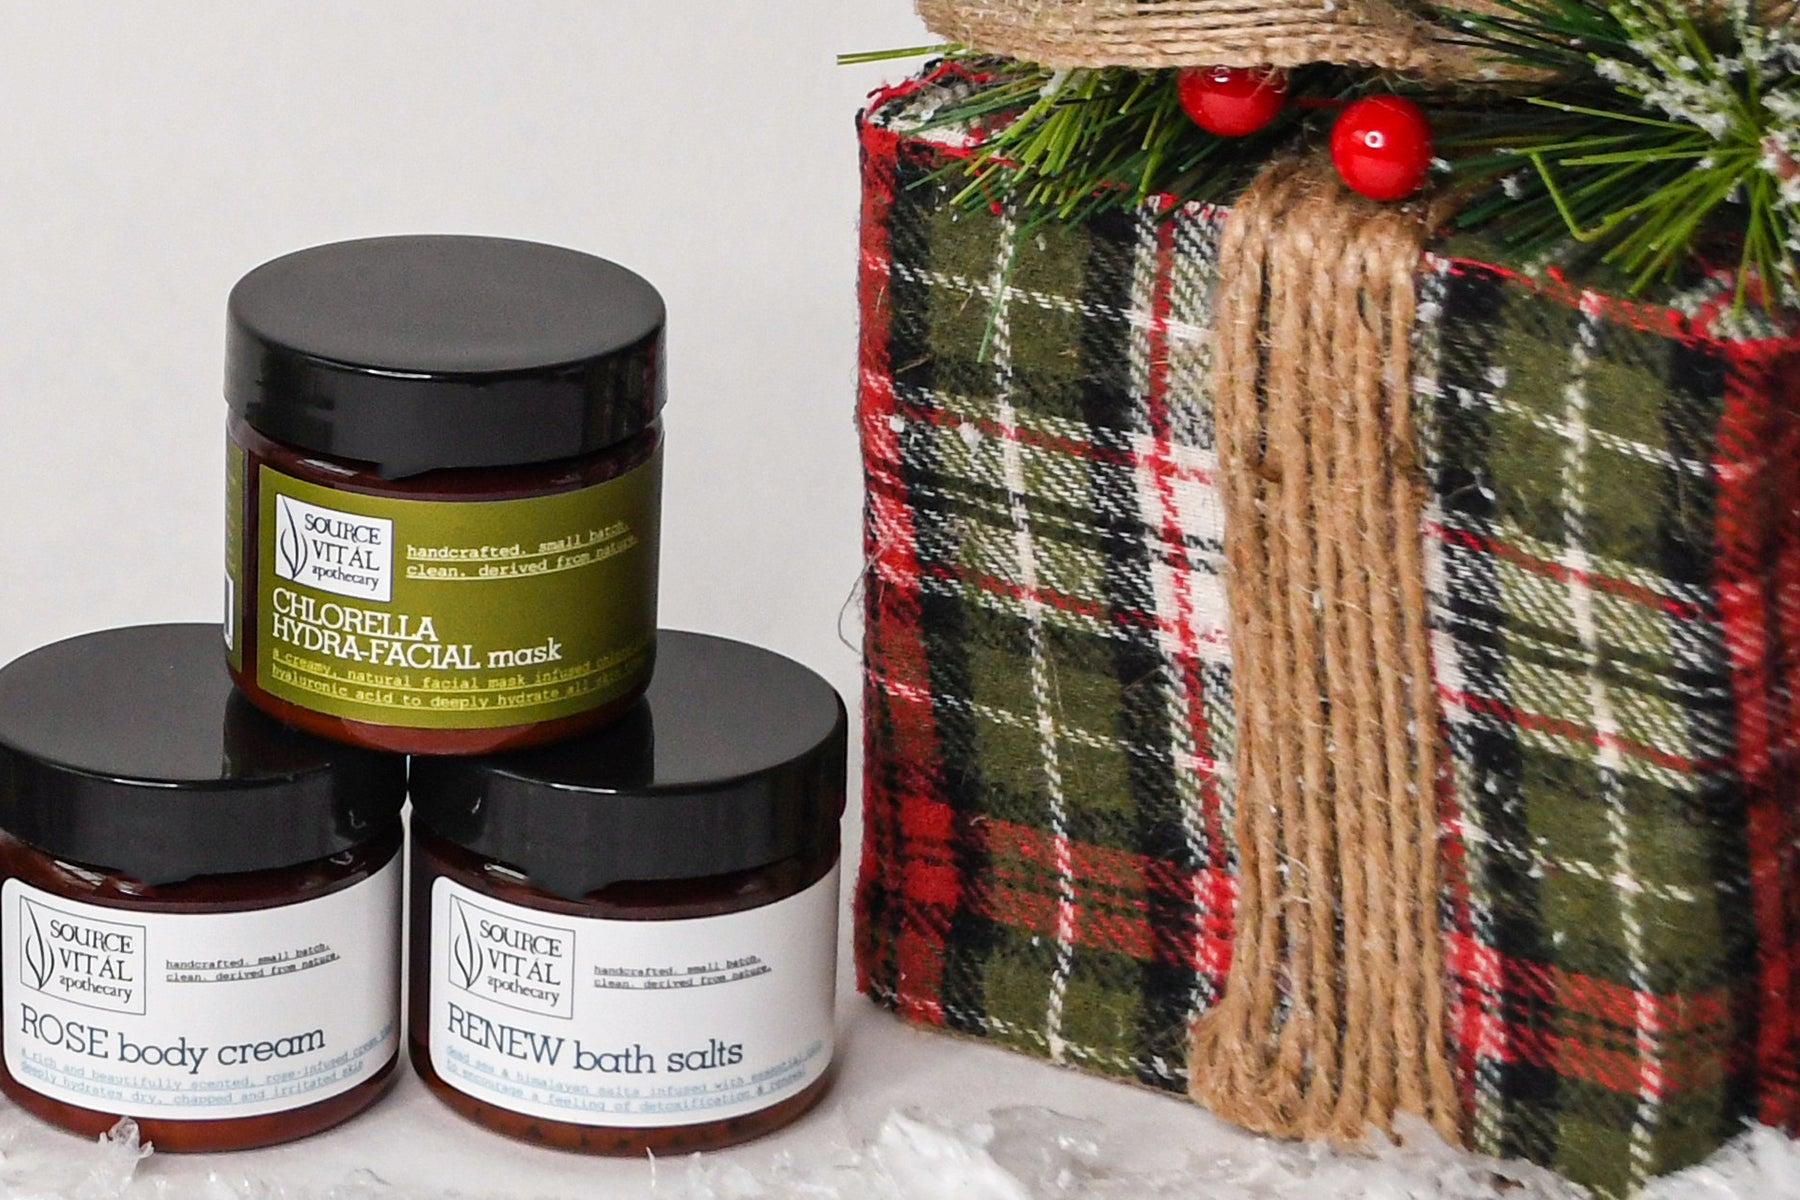 Skin care, Bath & Body, Wellness Holiday Gift Ideas and Stocking Stuffers